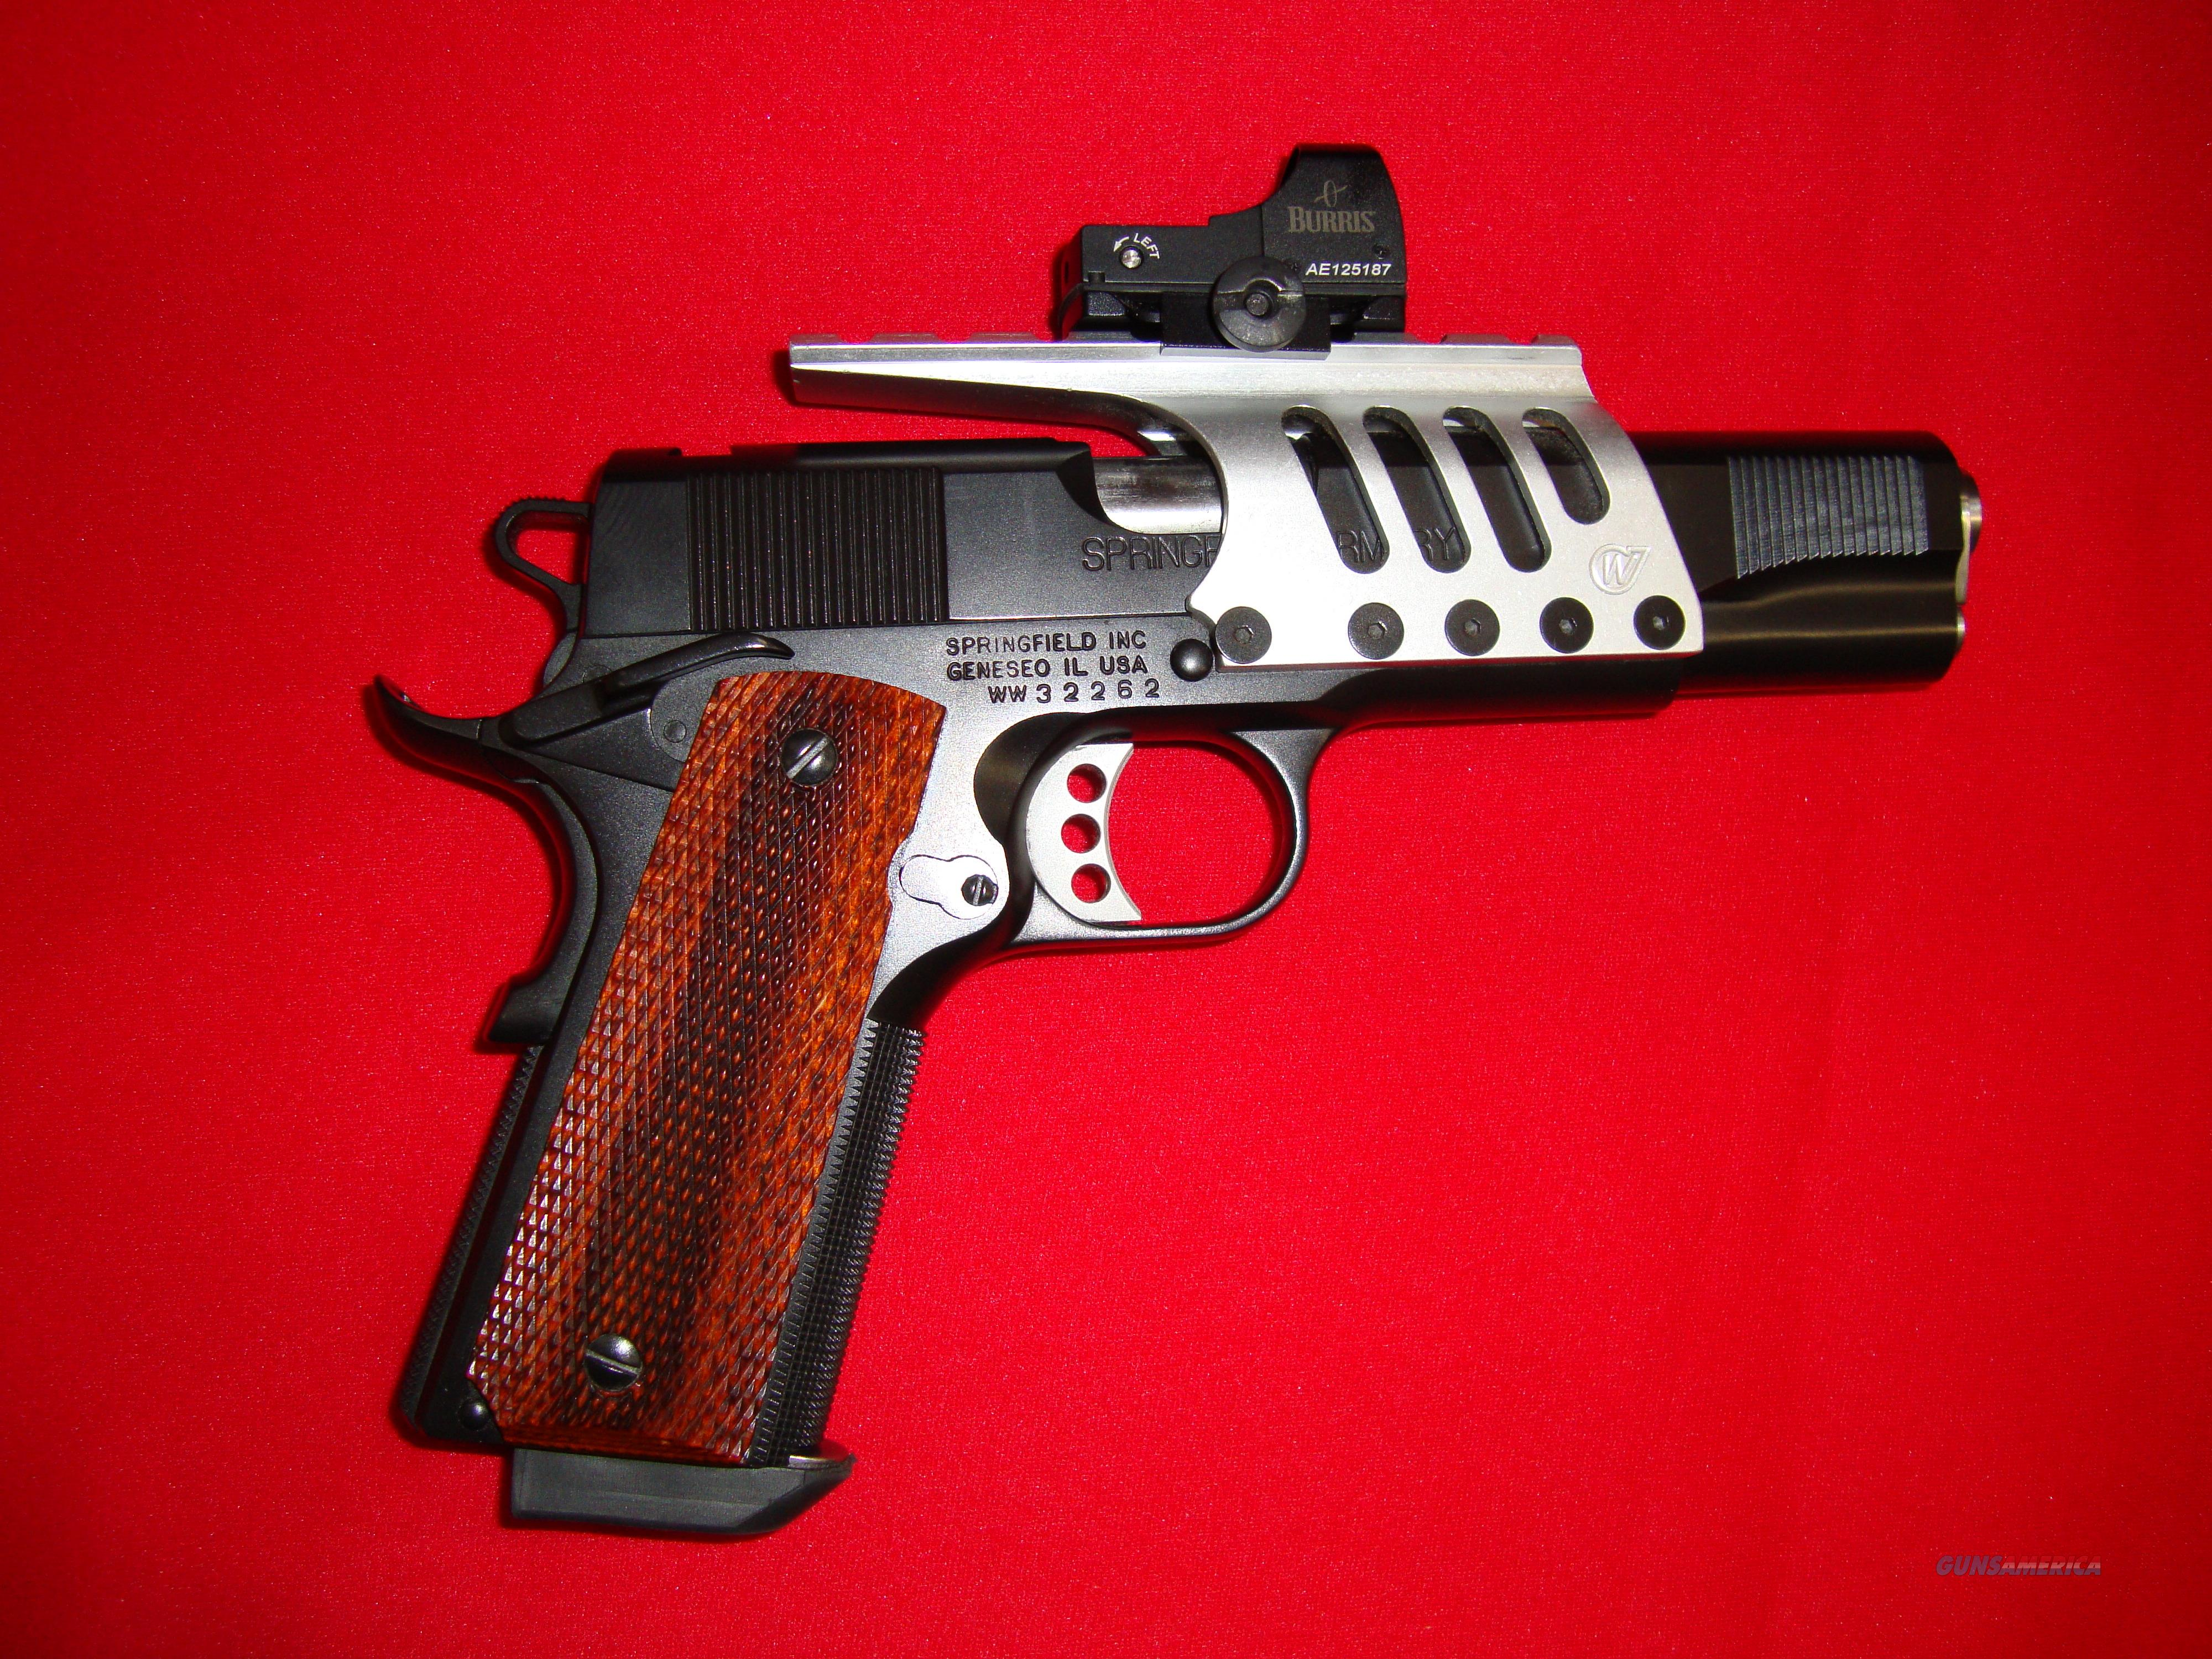 Springfield 1911 45ACP (Full Factory Modifications - ONE ONLY)  Guns > Pistols > Springfield Armory Pistols > 1911 Type